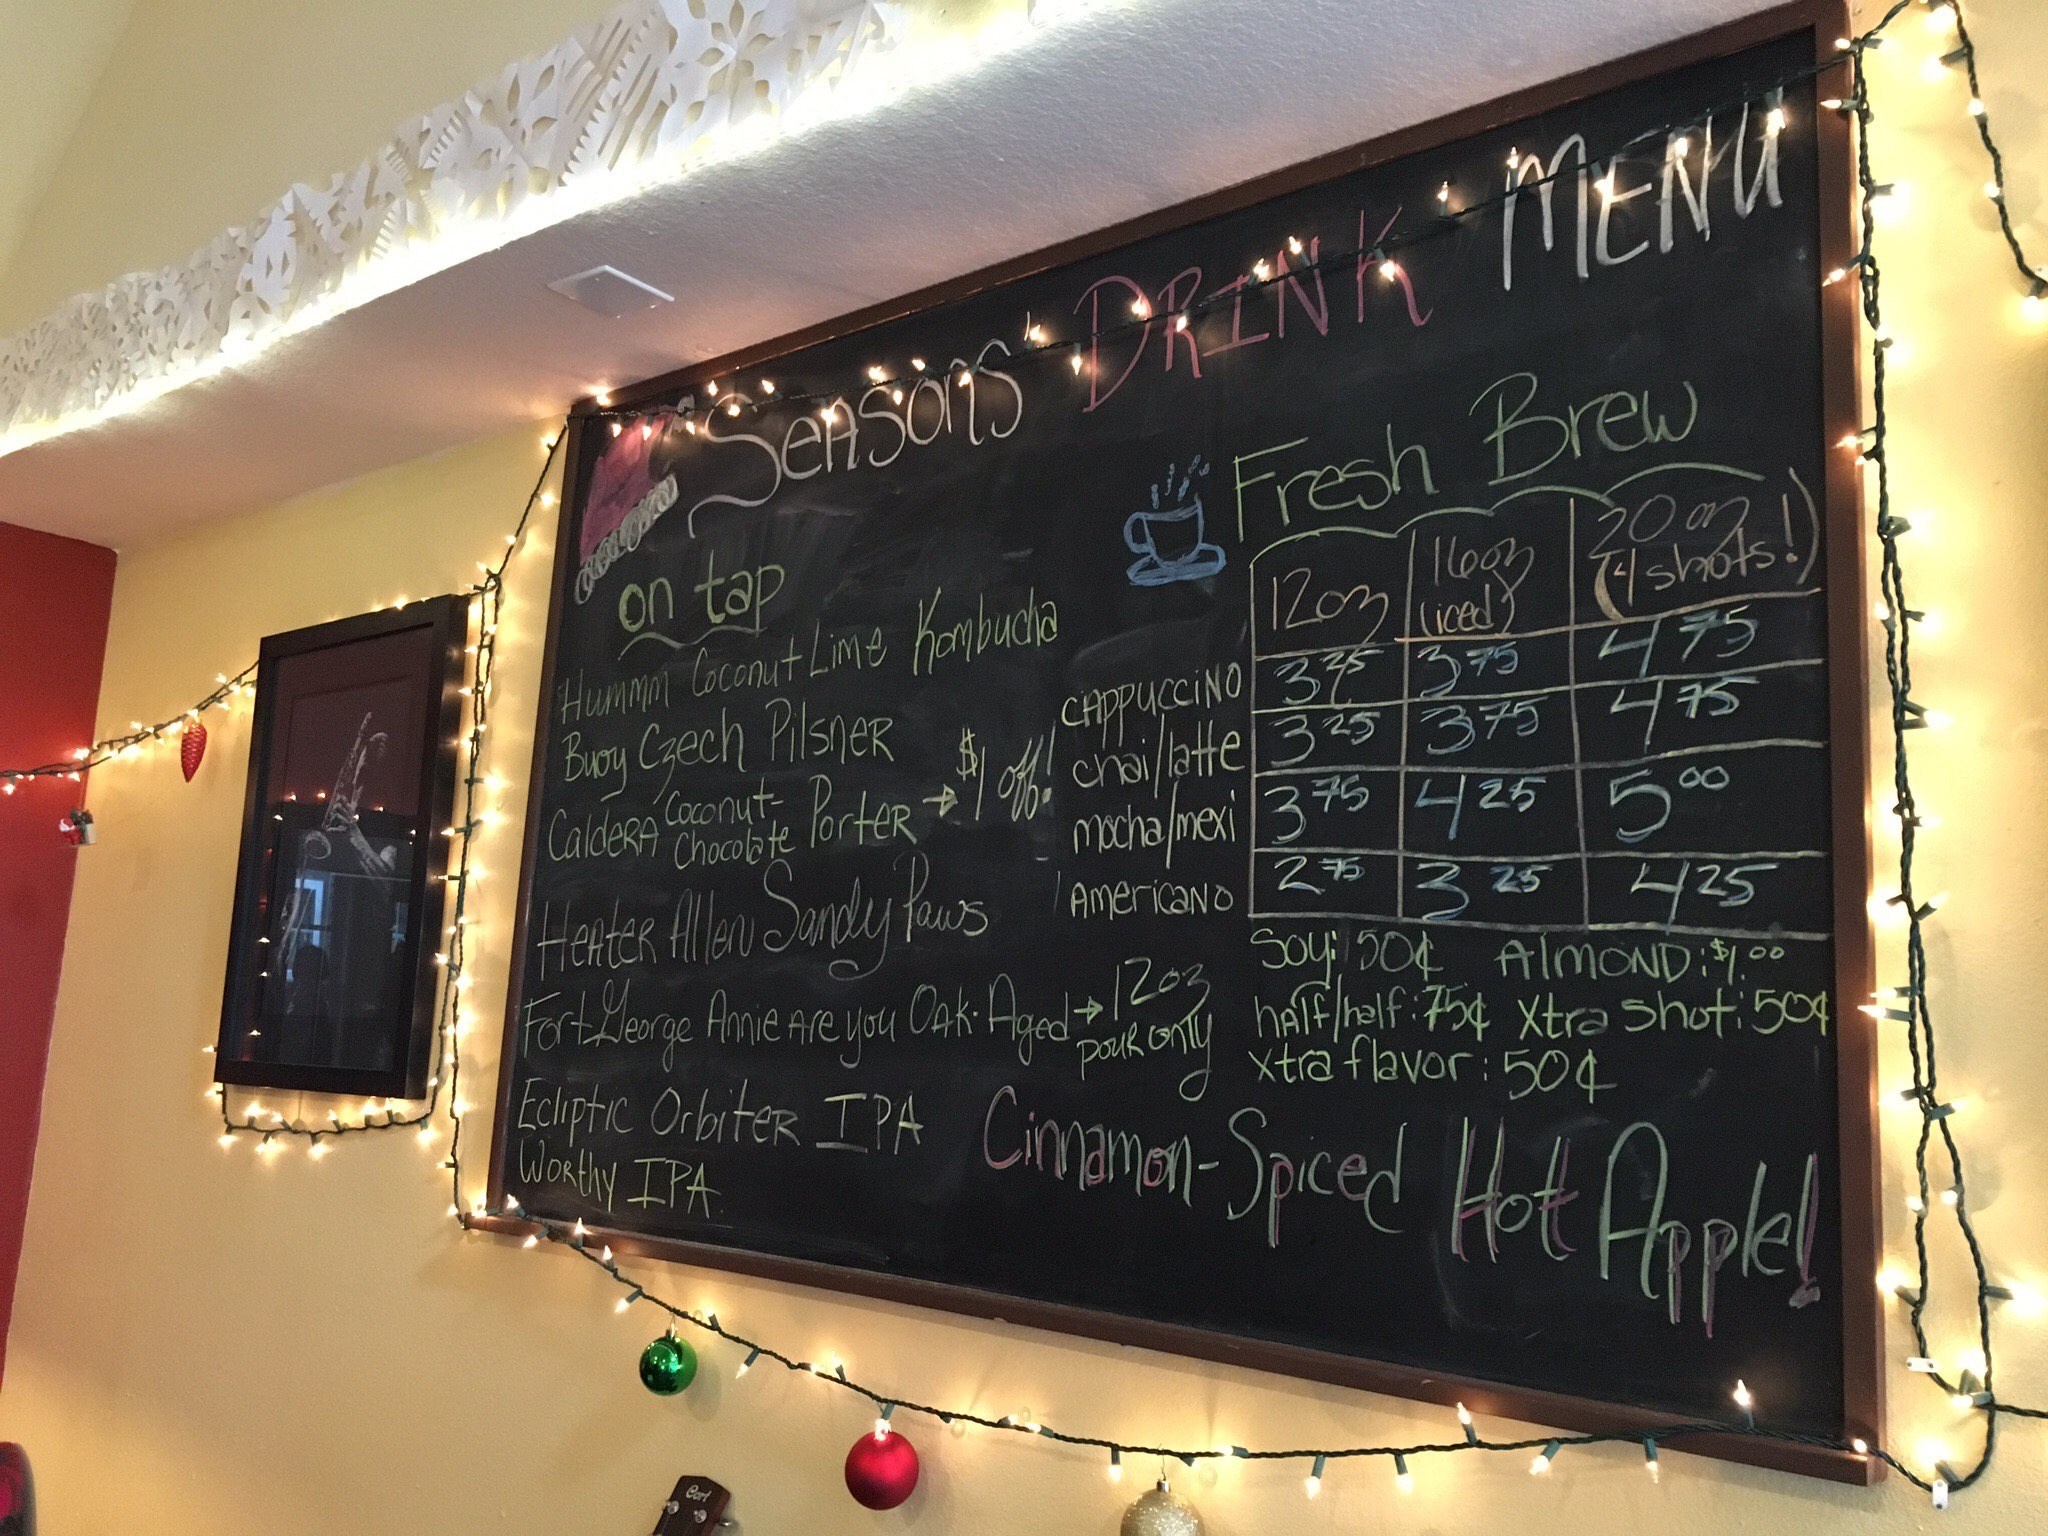 Beer Menu at Seasons Cafe in Cannon Beach, OR (photo by Cat Stelzer)